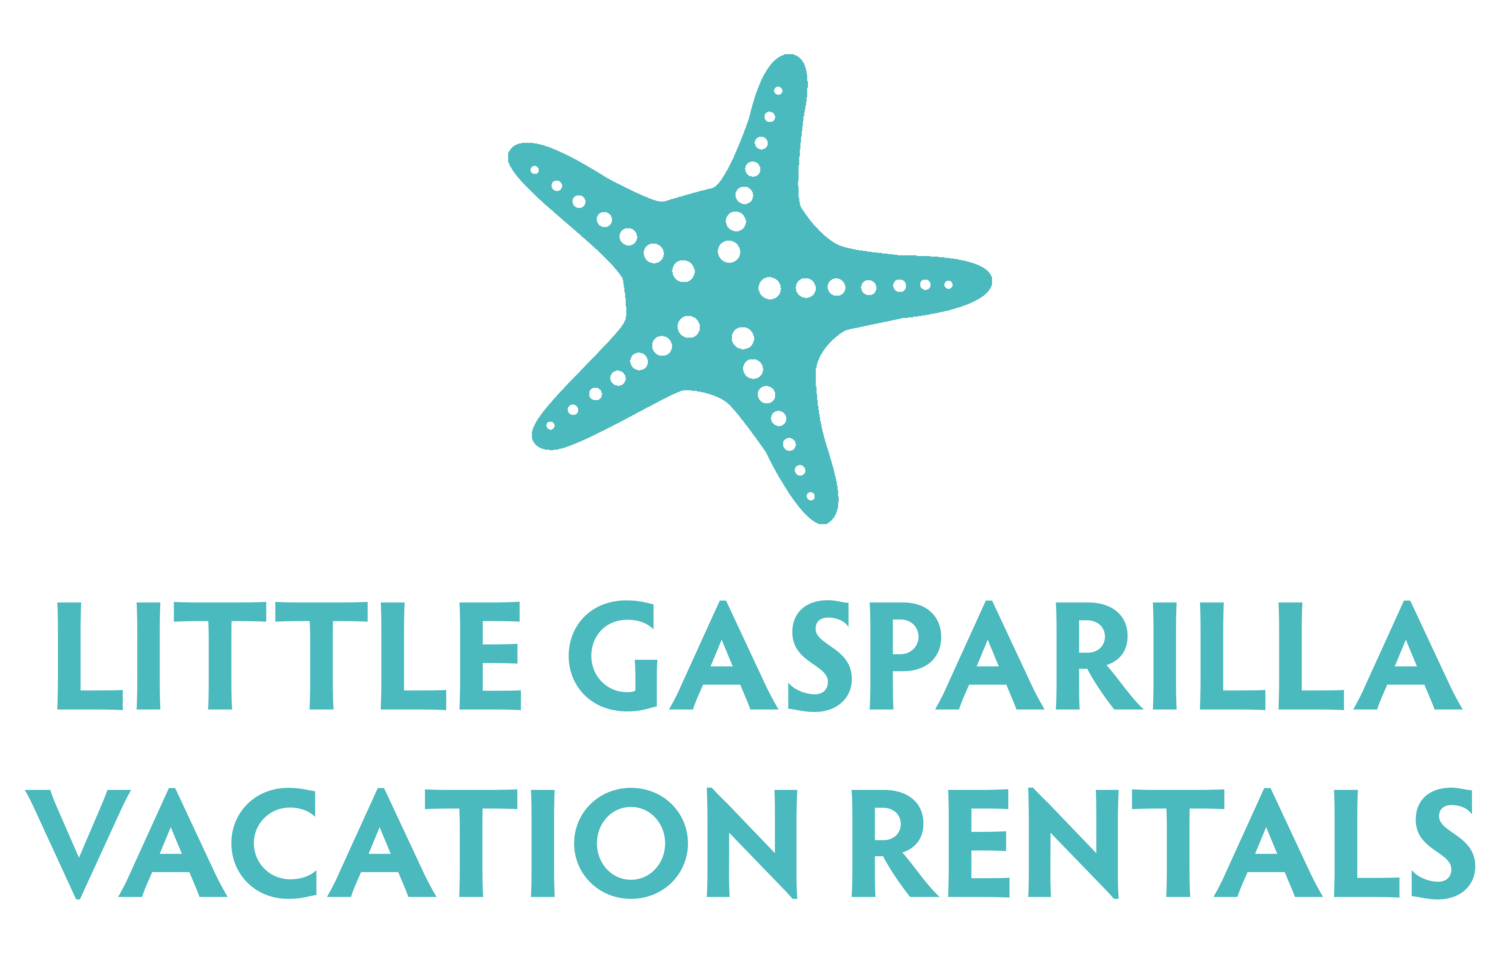 Little Gasparilla Vacation Rentals